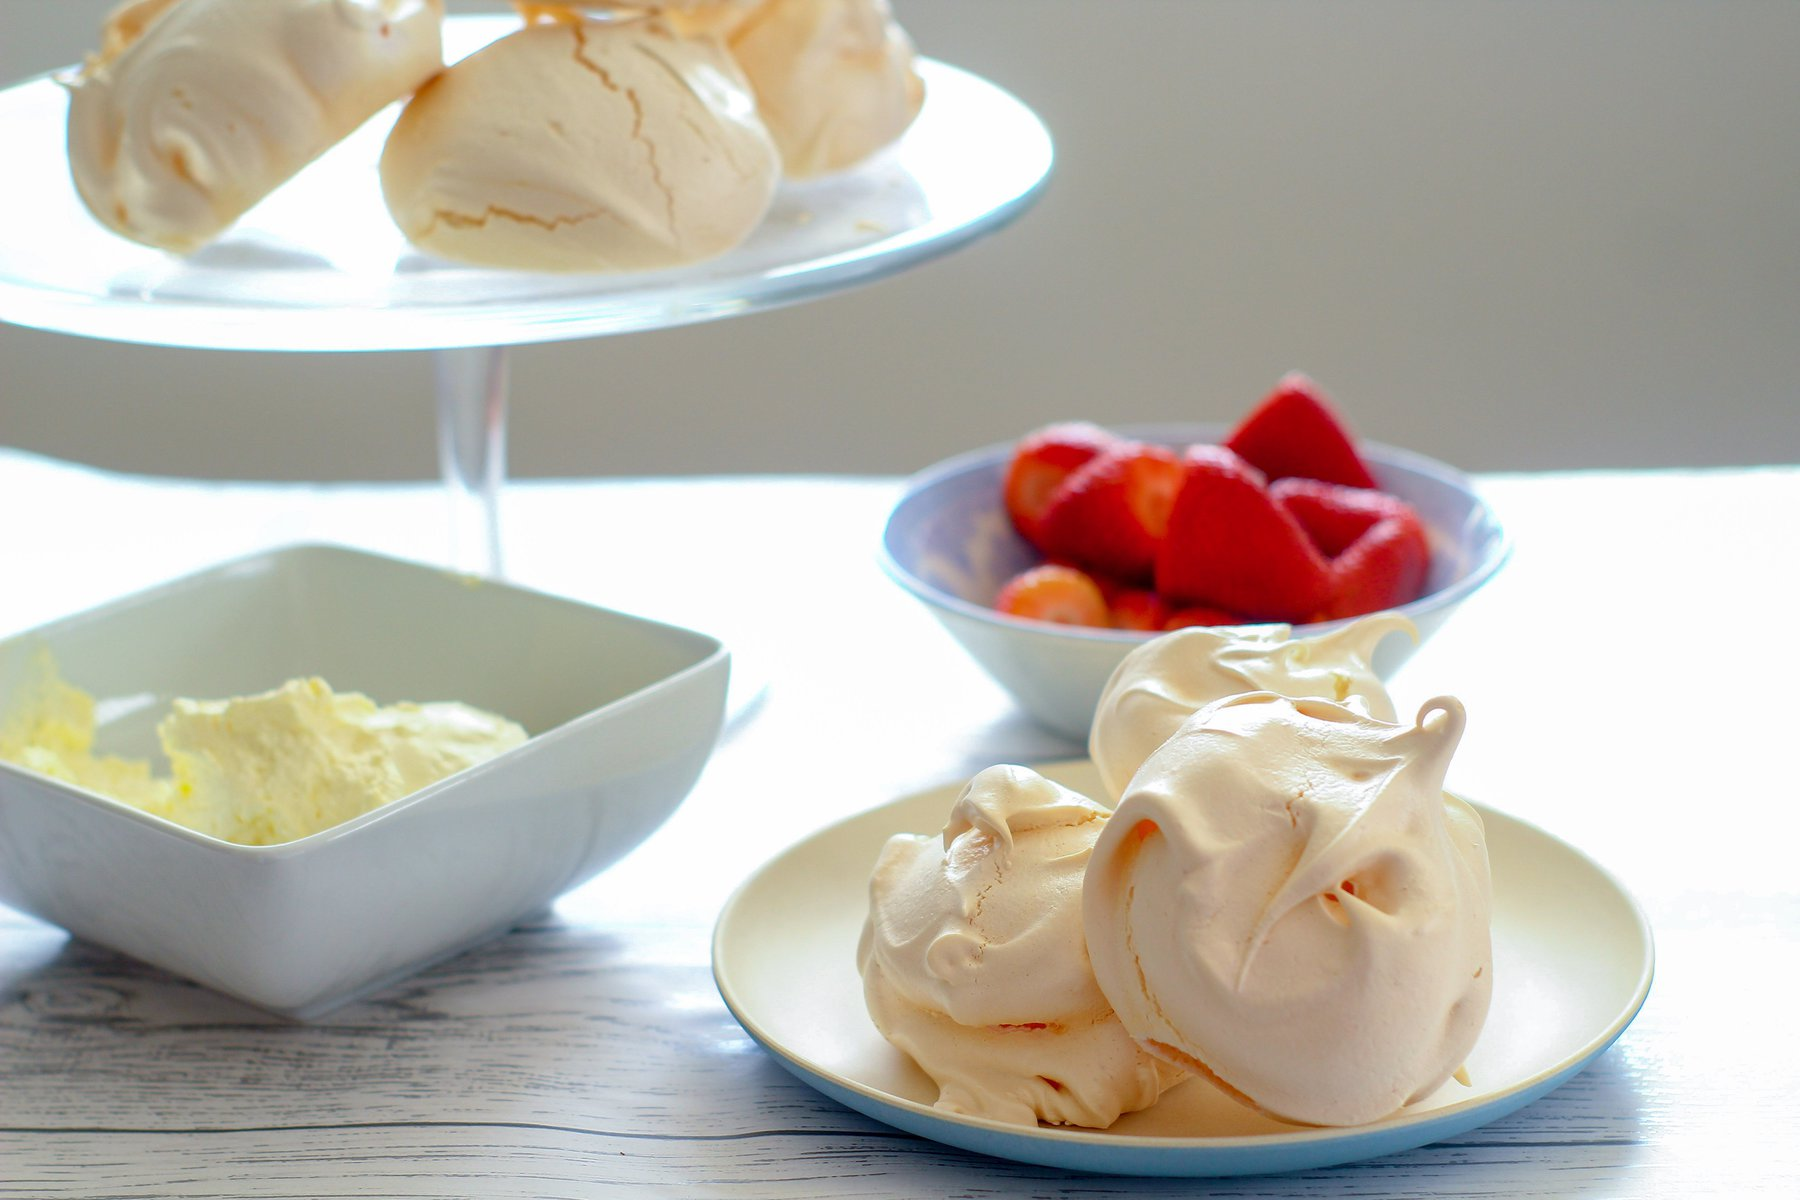 meringues, strawberries and cream